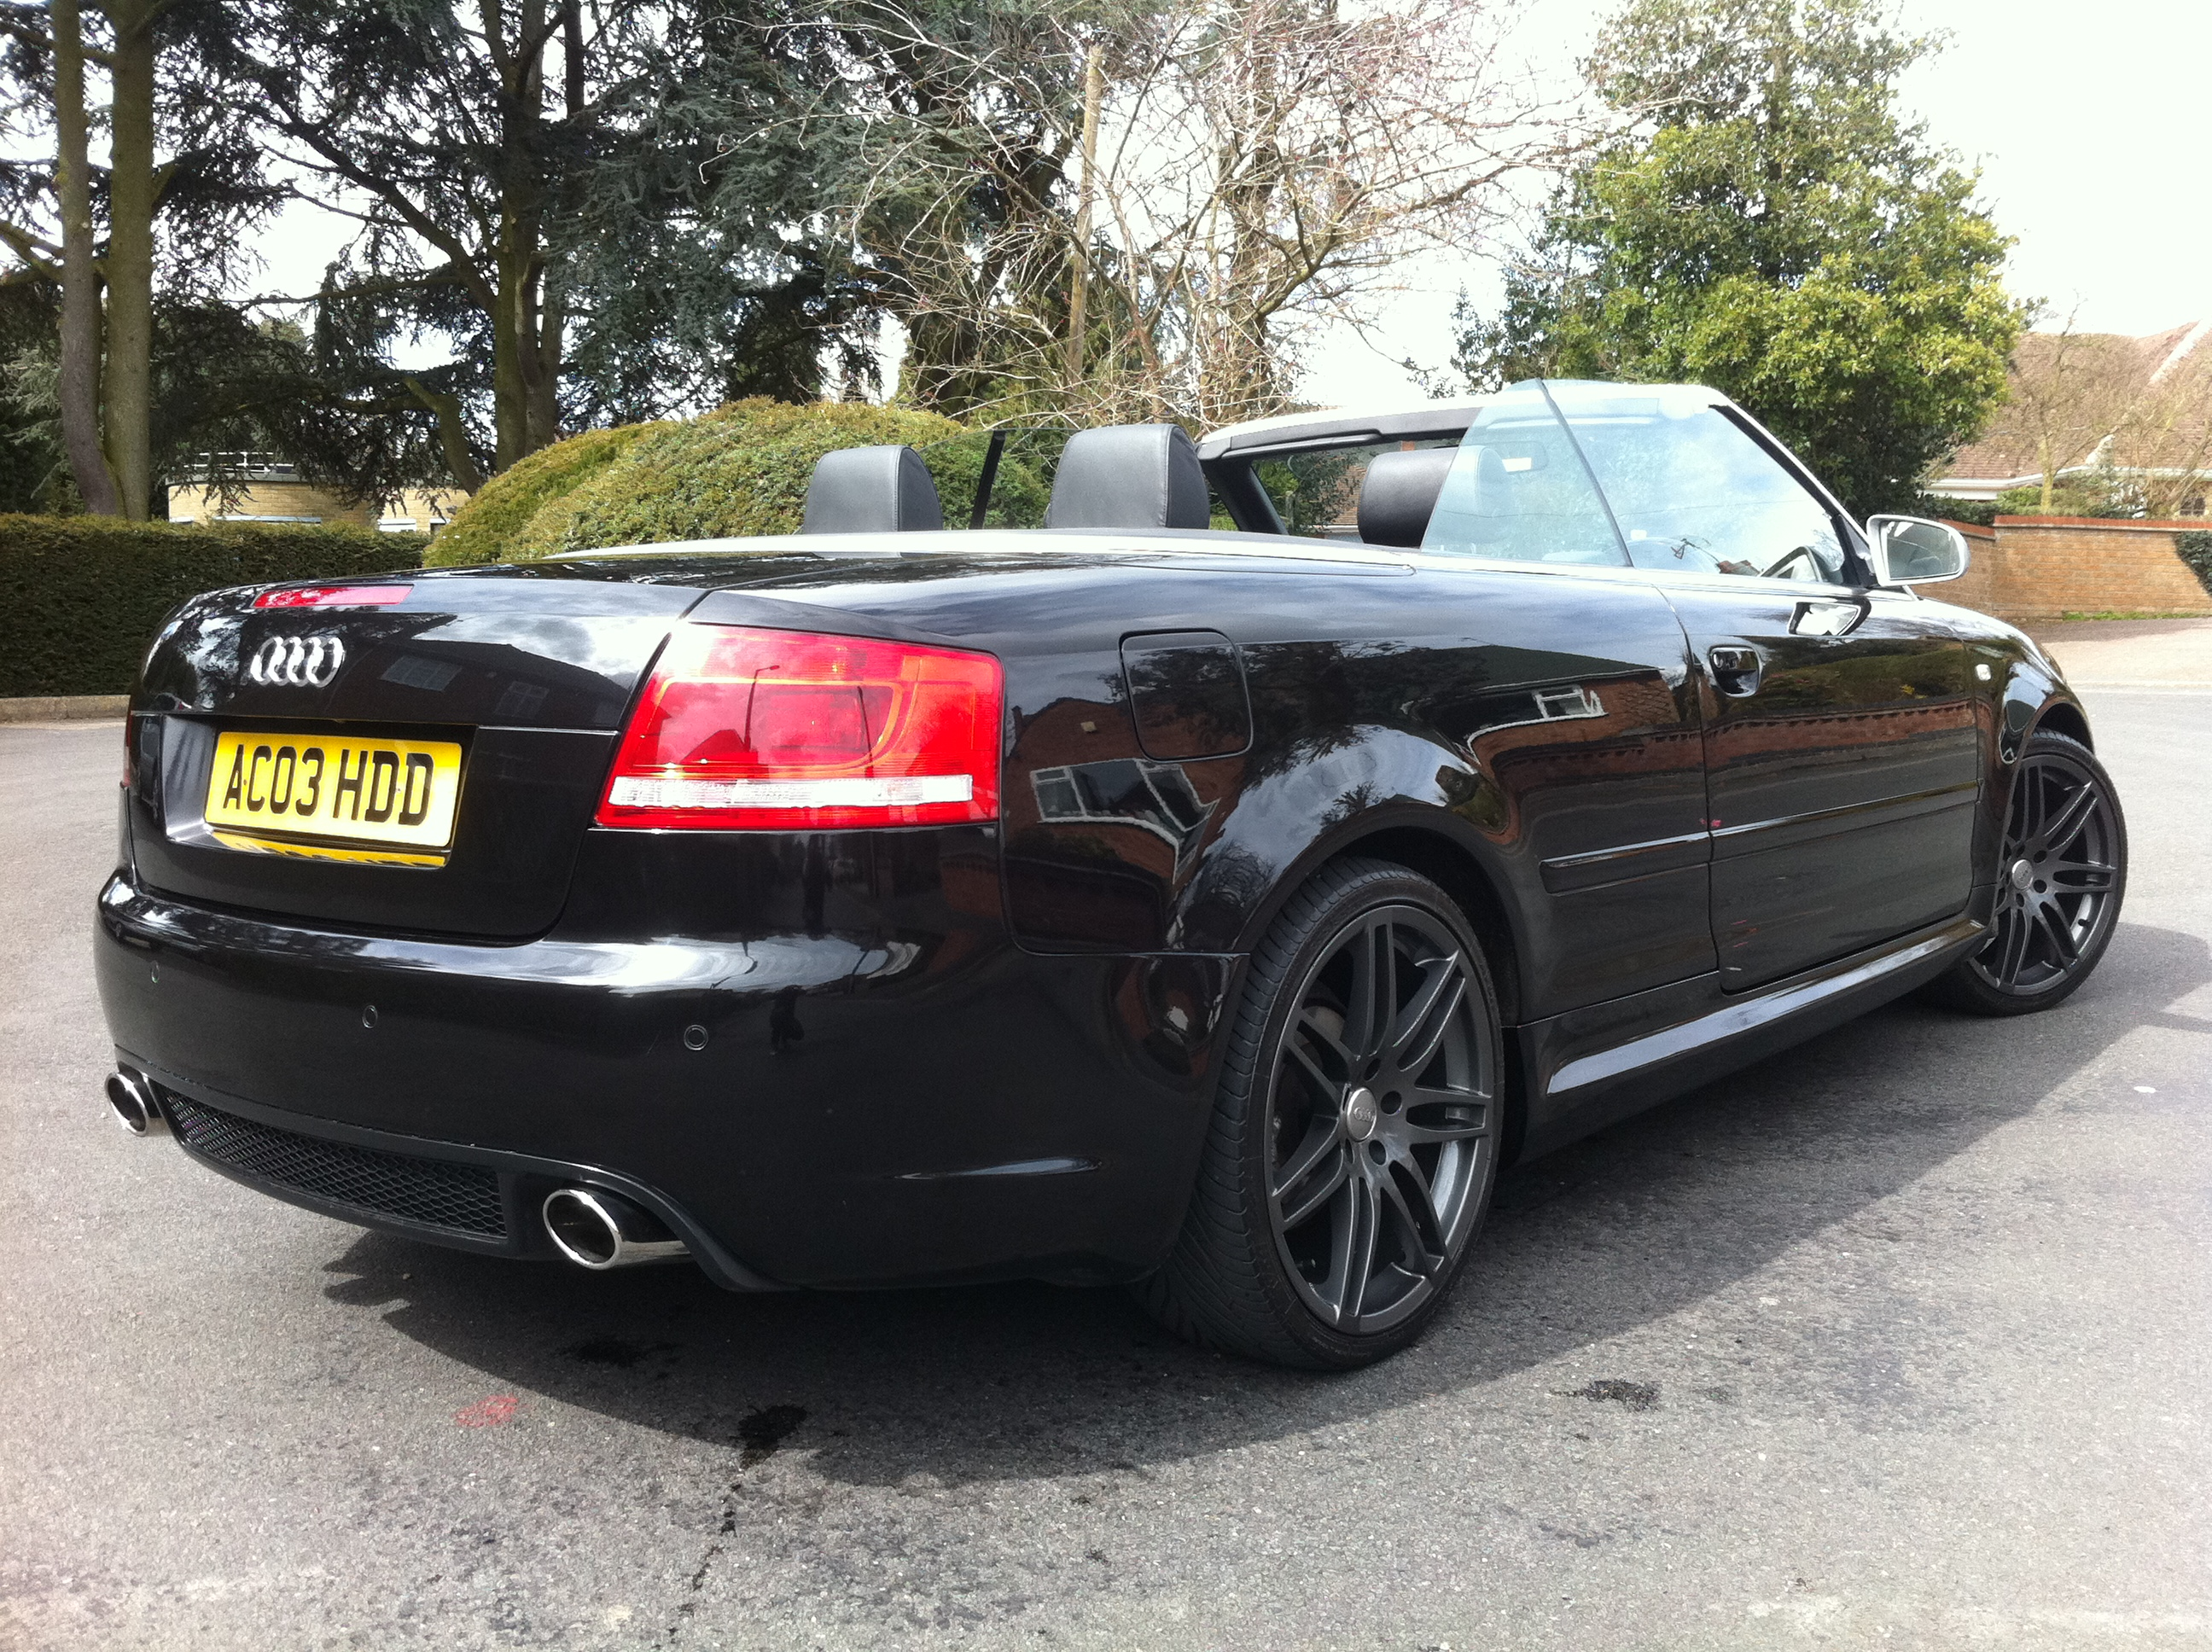 AUDI A4 3.0 SPORT 2DR RS4 REPLICA / WIDESCREEN SAT NAV / FULL NAPPA LEATHER / FULL HISTORY - TJ ...